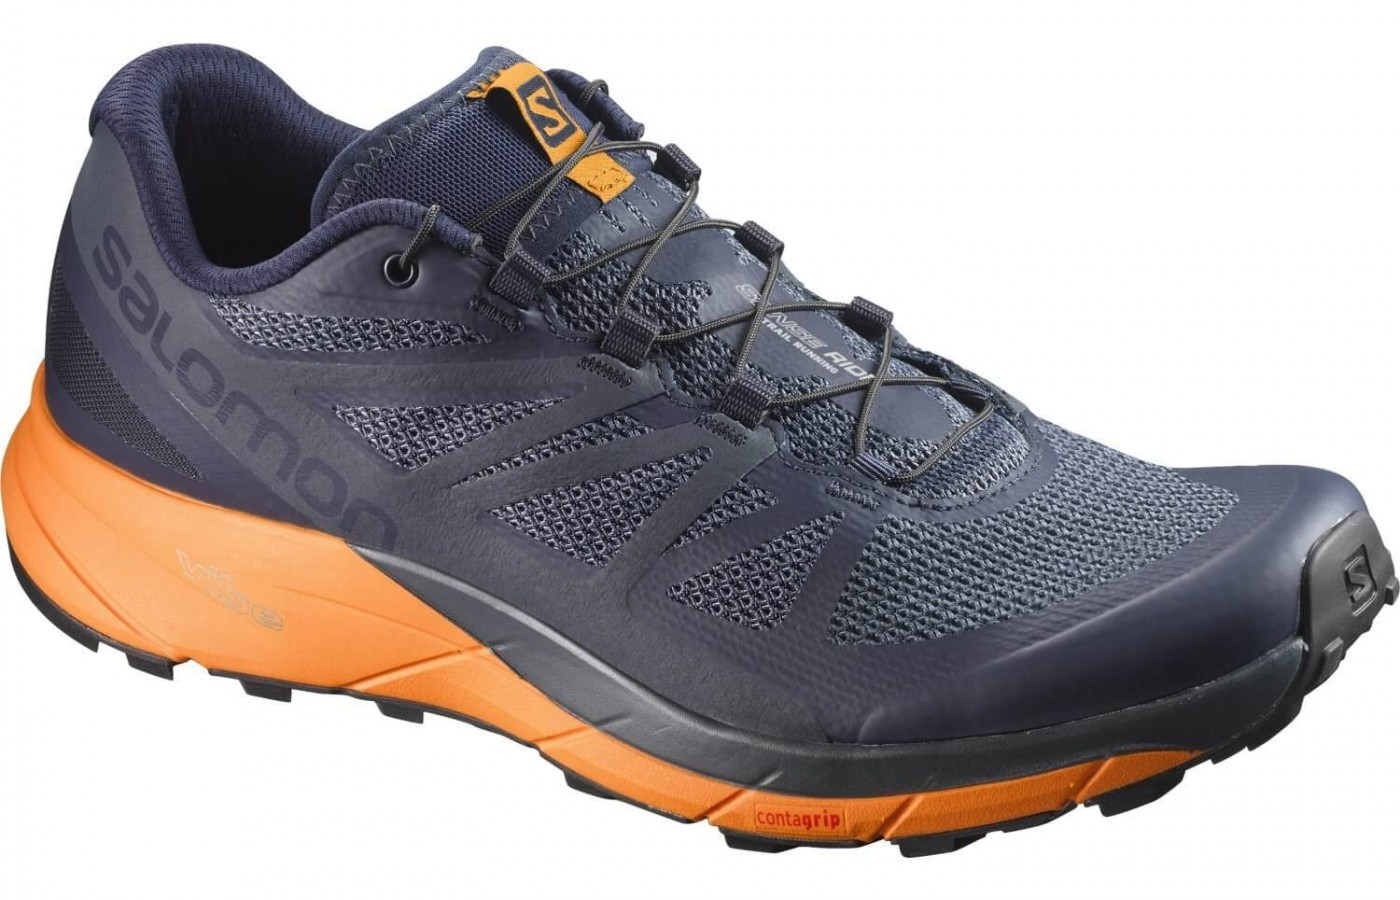 22ed597fc2a8 Salomon Sense Ride. Runners will be pleased with the Contagrip outsole ...